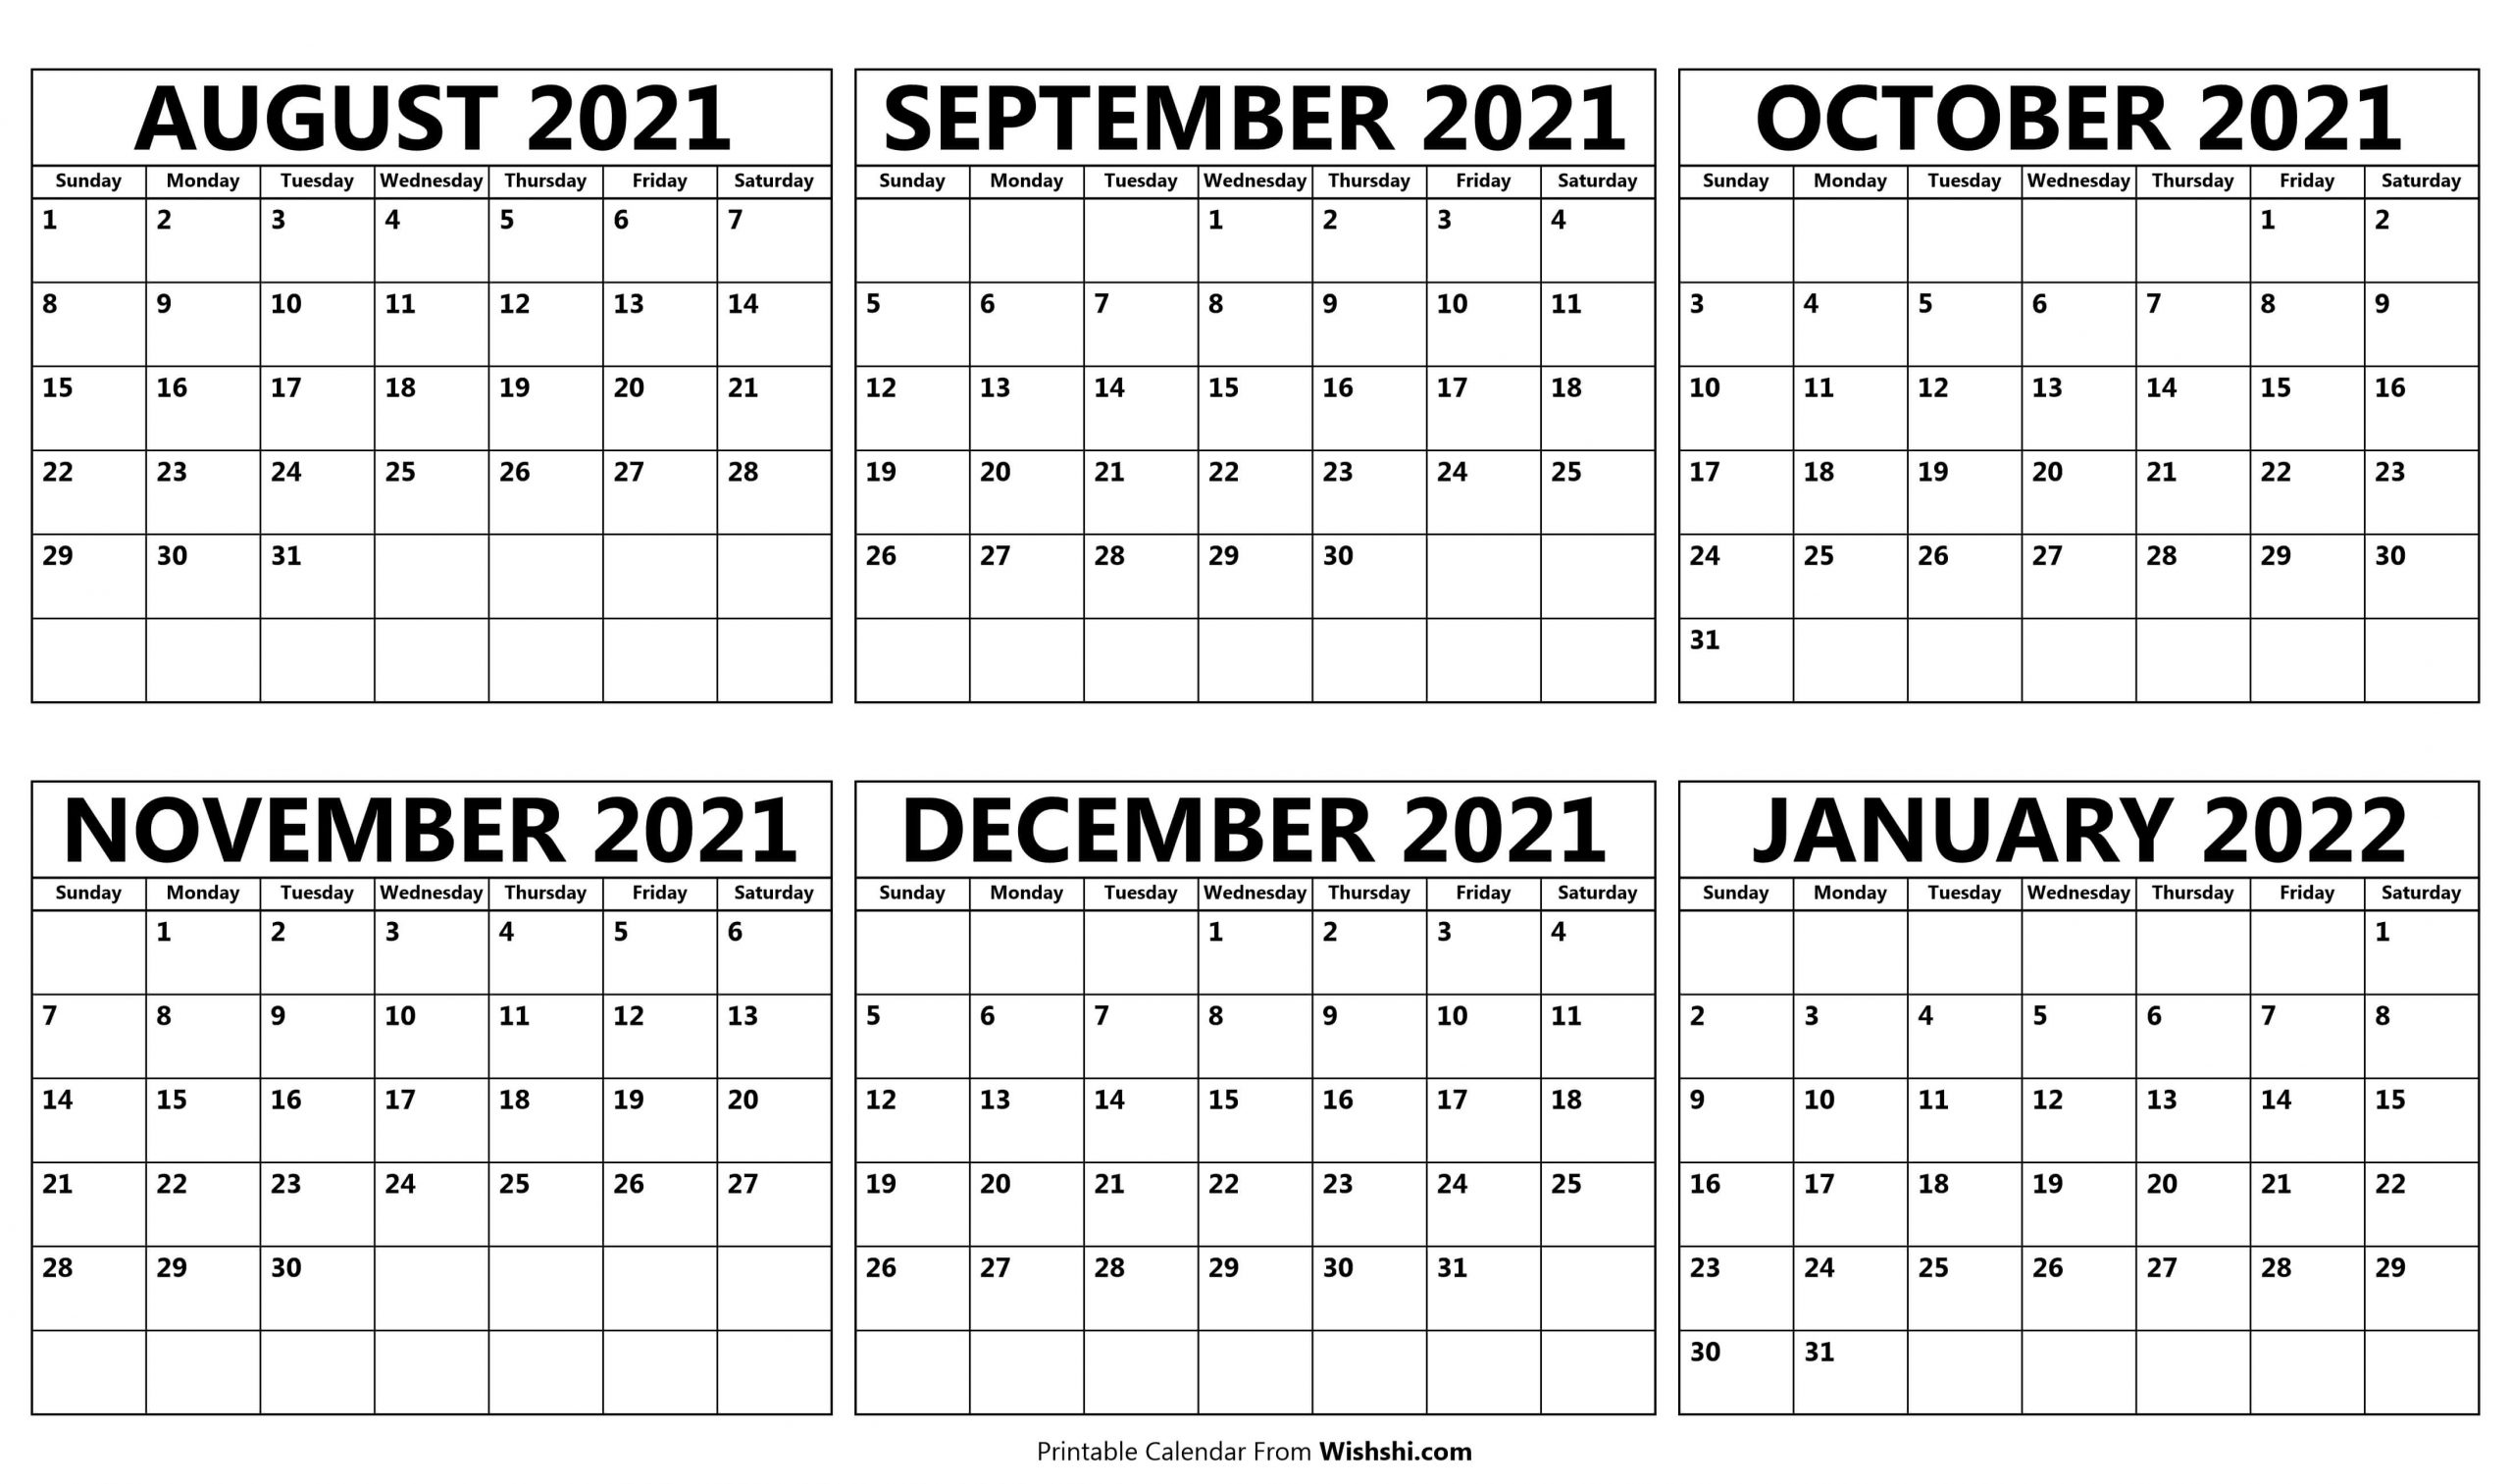 Calendar August 2021 to January 2022 scaled